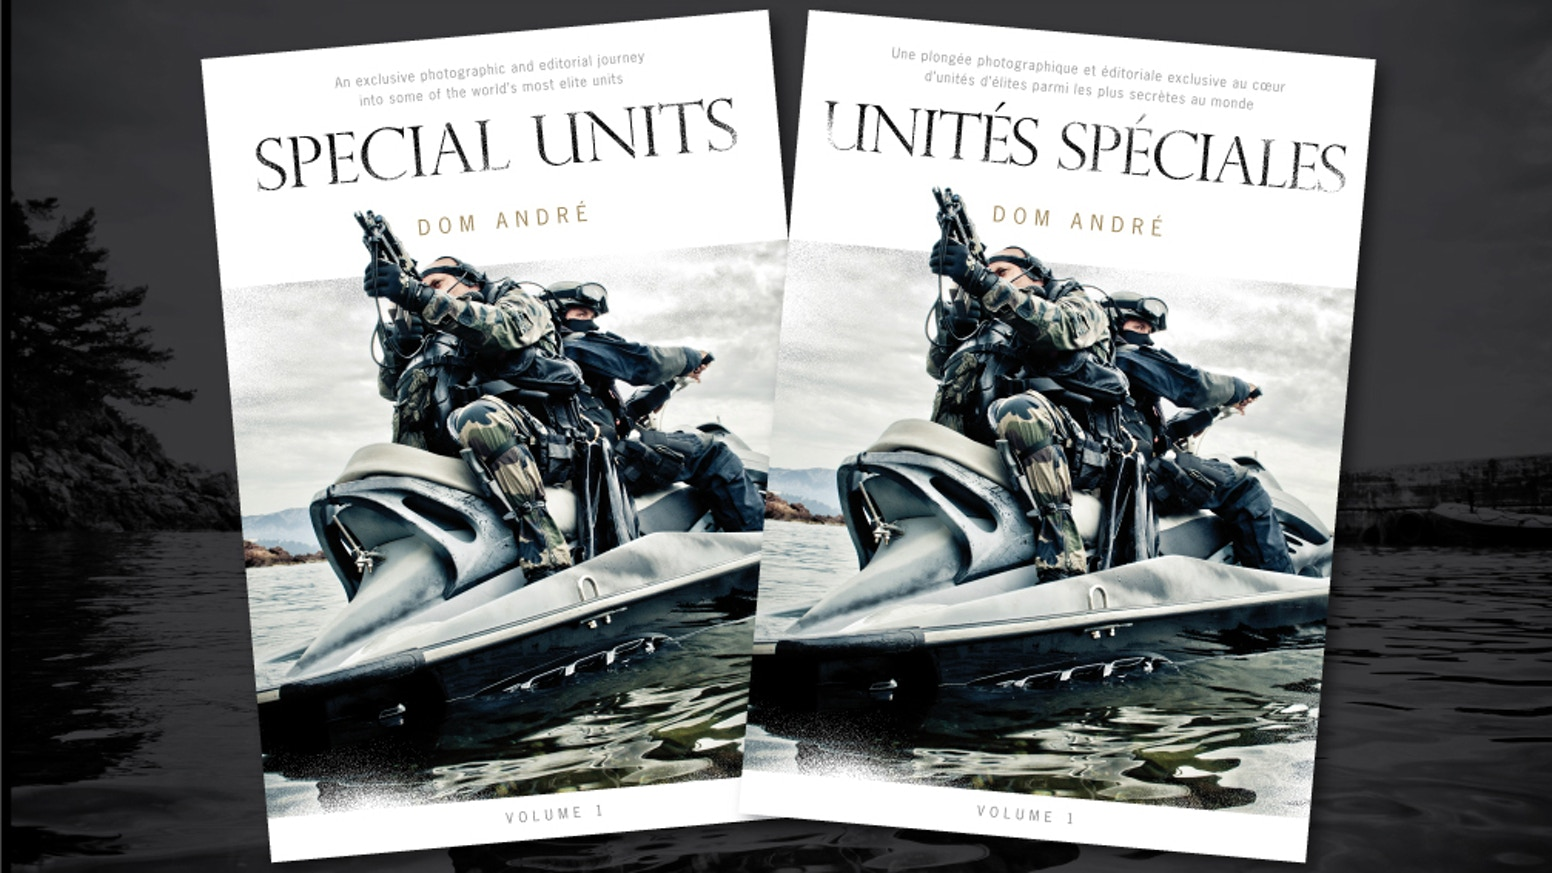 Ireland Coffee Table Book Special Units Units Spciales Coffee Table Book By Dom Andrc